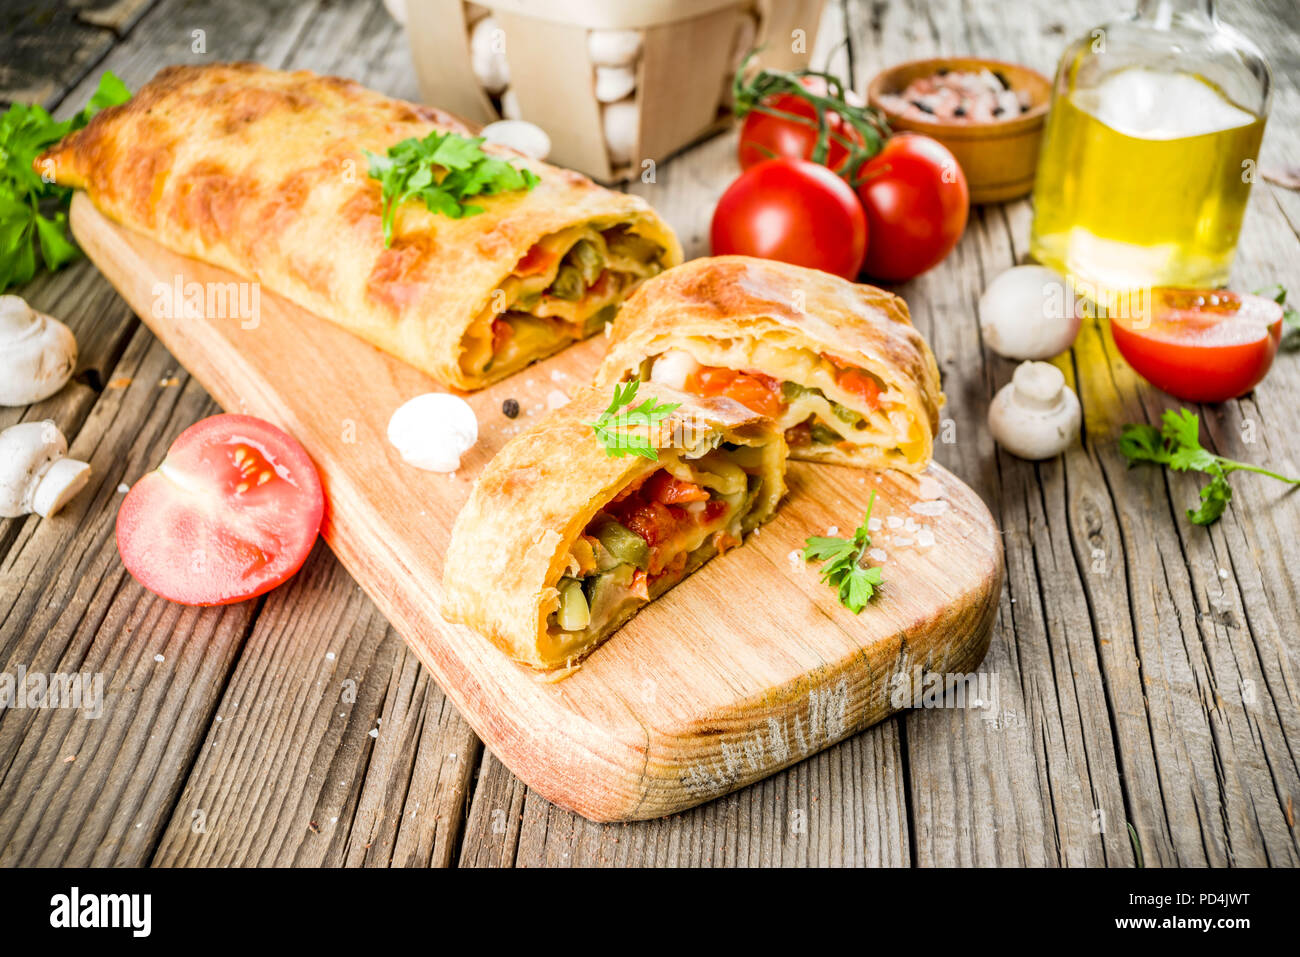 Vegetable savory strudel, homemade autumn baking, with tomatoes, bell pepper, mushrooms, wooden background copy space - Stock Image